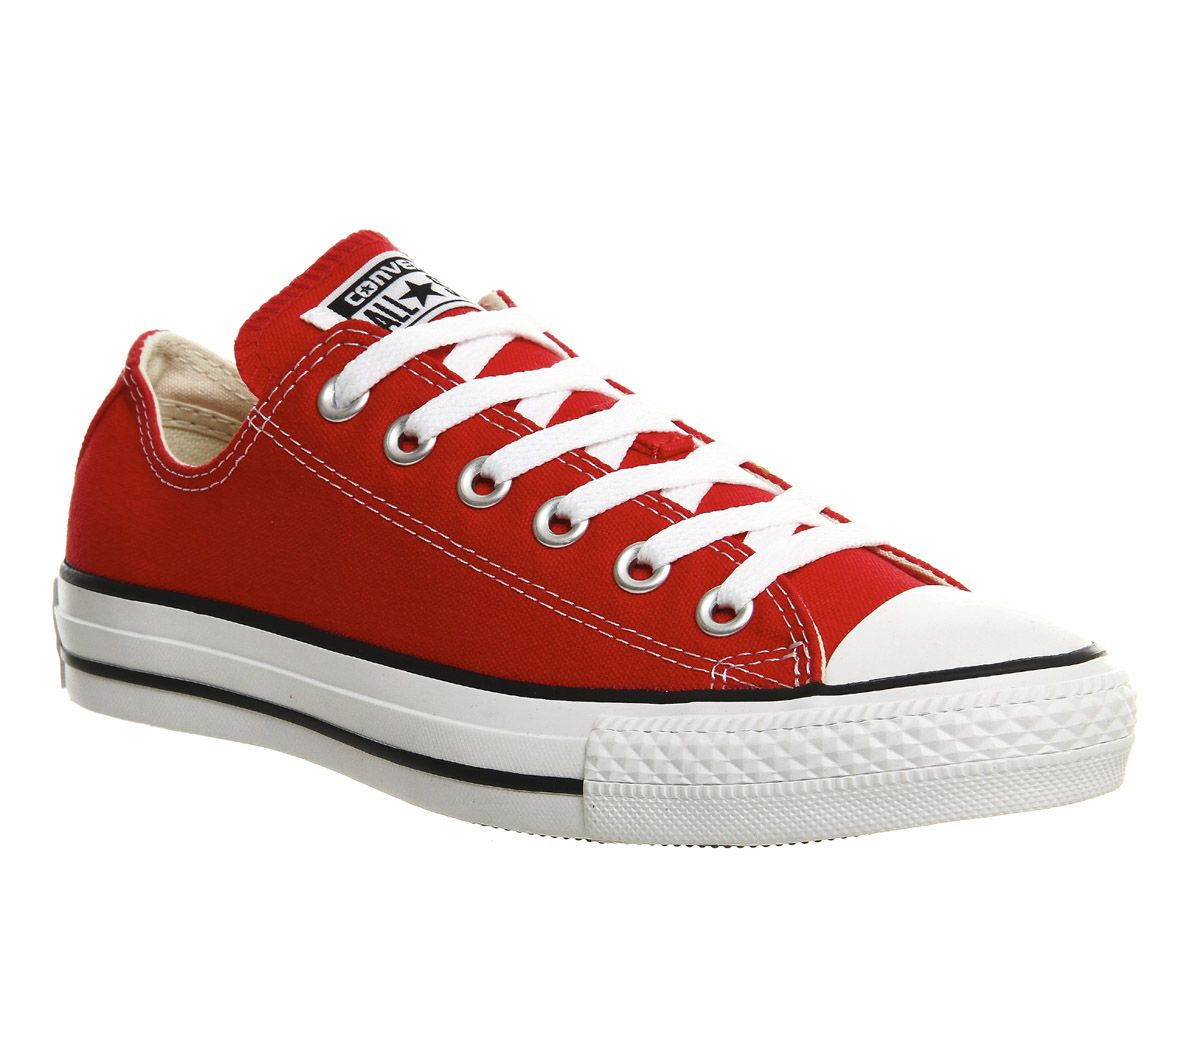 a3245e67823043 Converse All Star Low Red Canvas - Unisex Sports